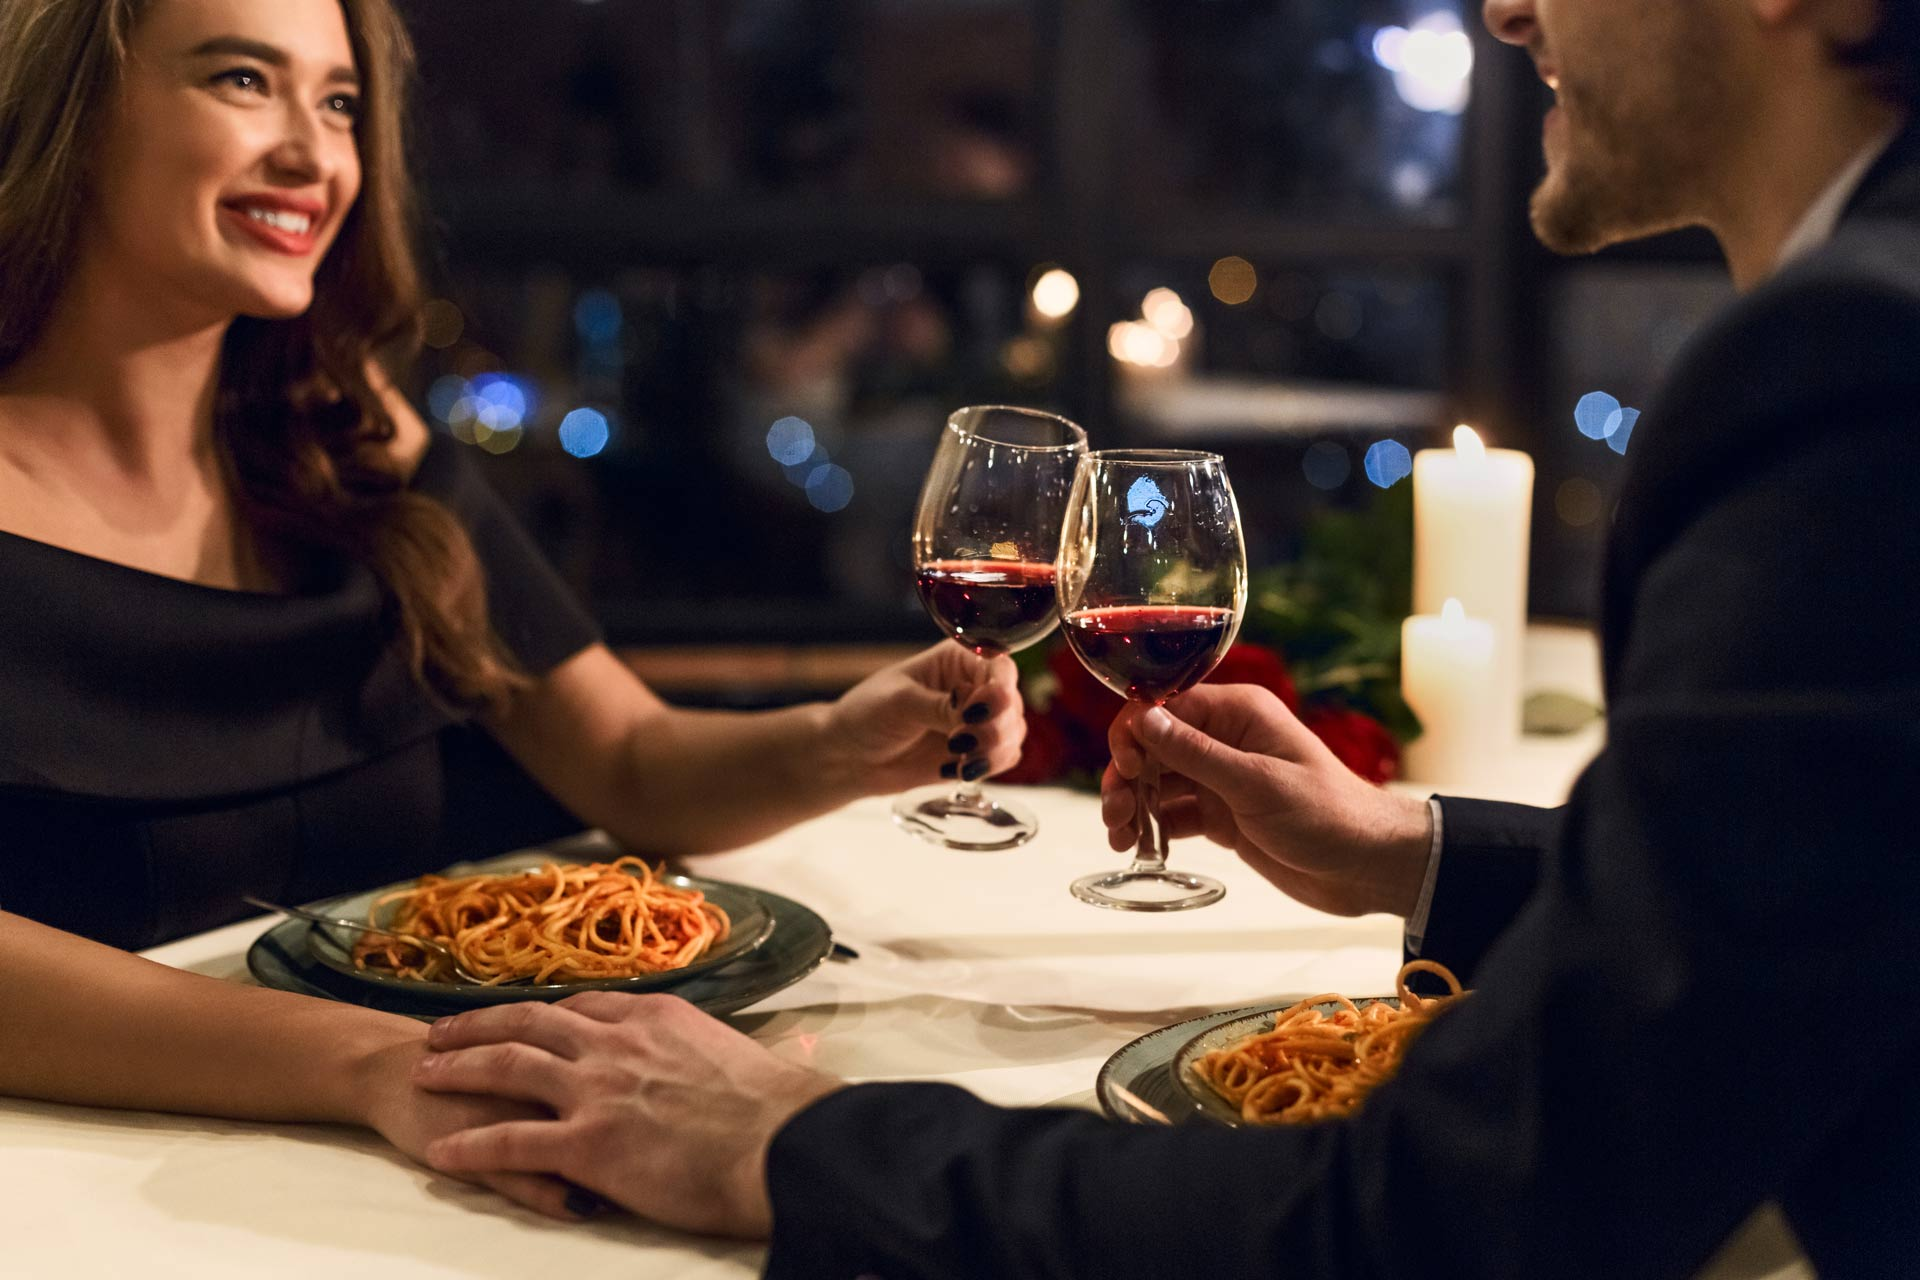 What Are Some Good Ideas For Date Night?